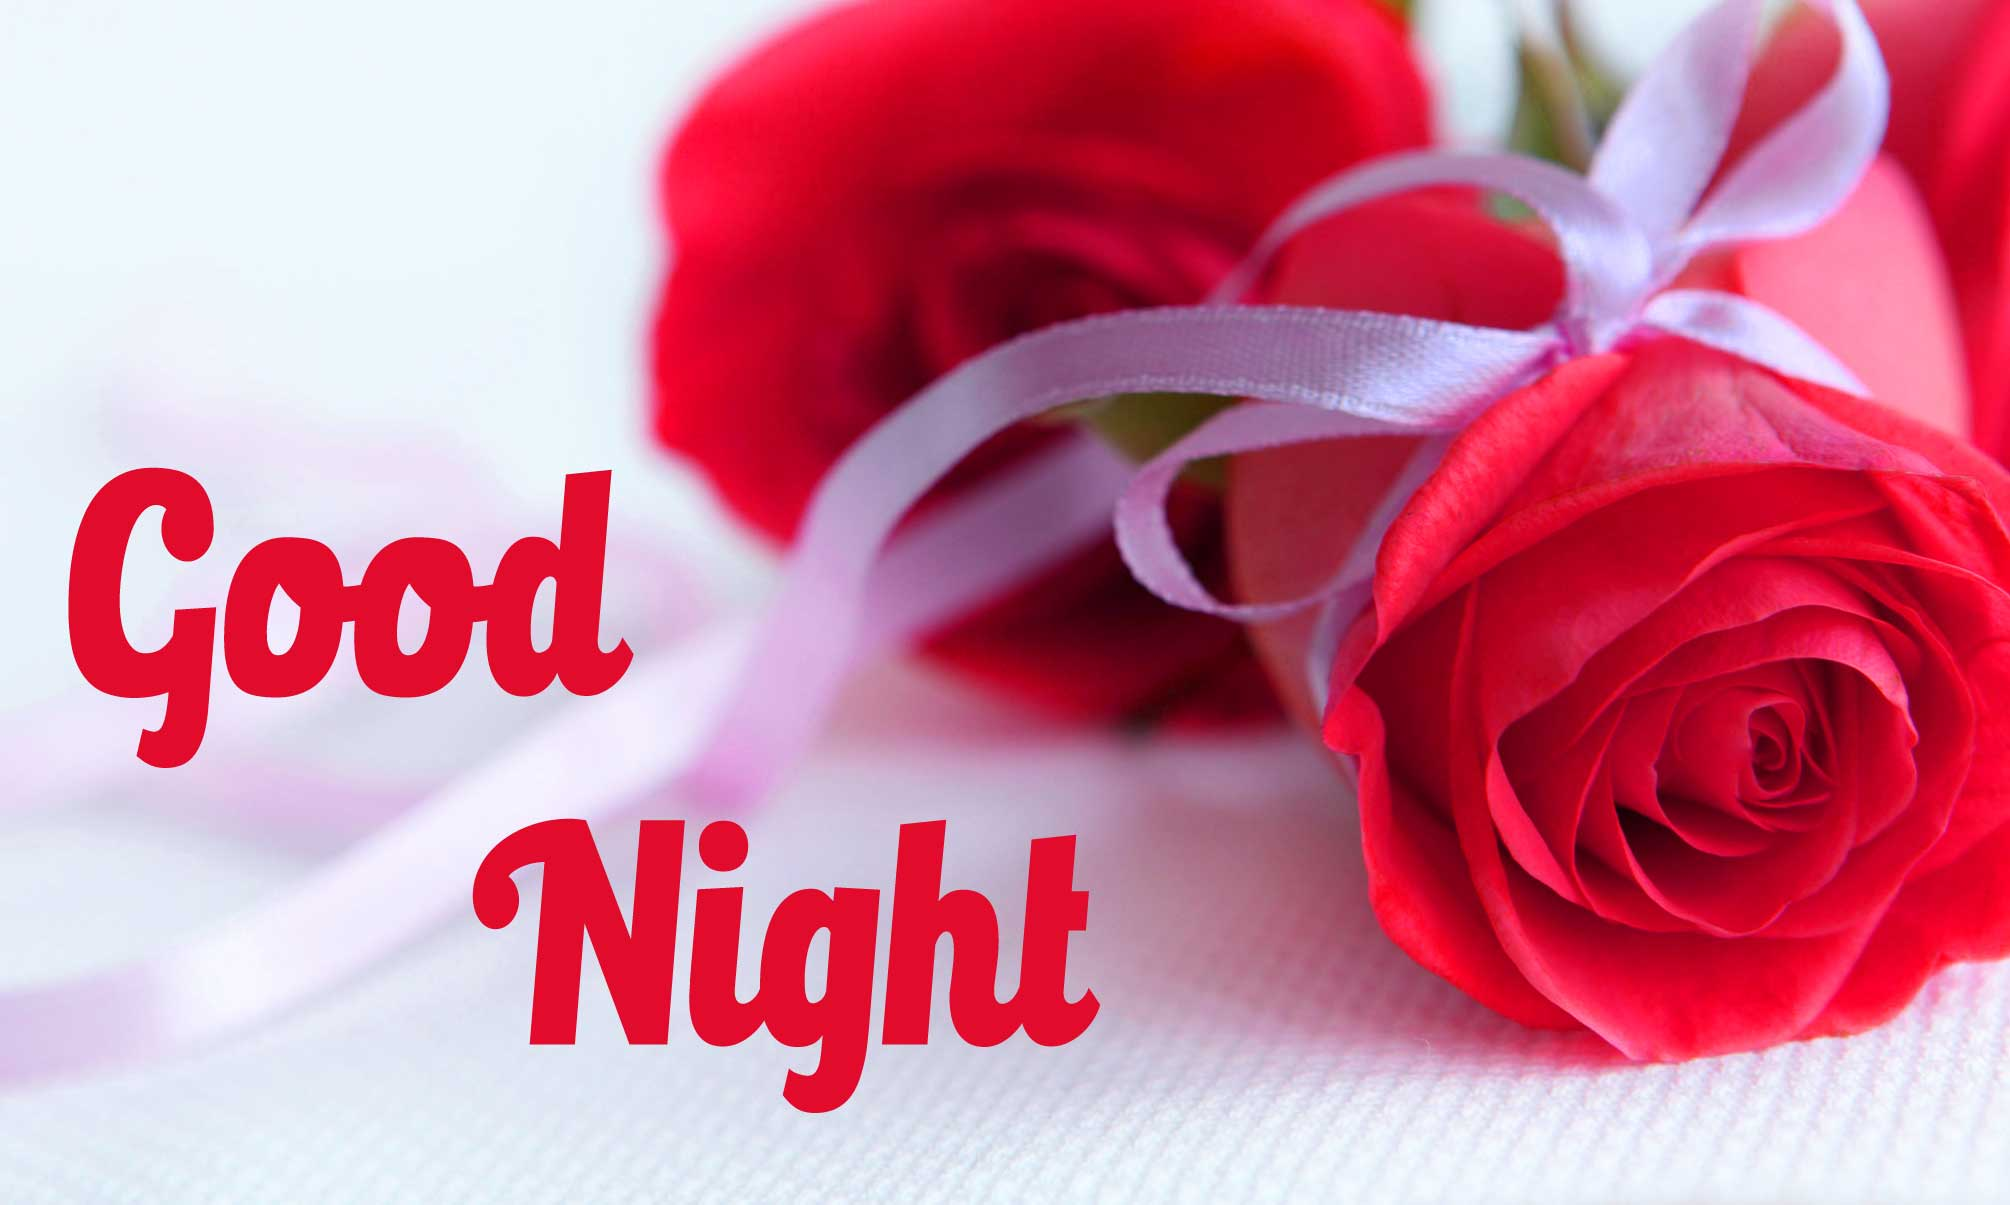 Beautiful Good Night Images With Rose